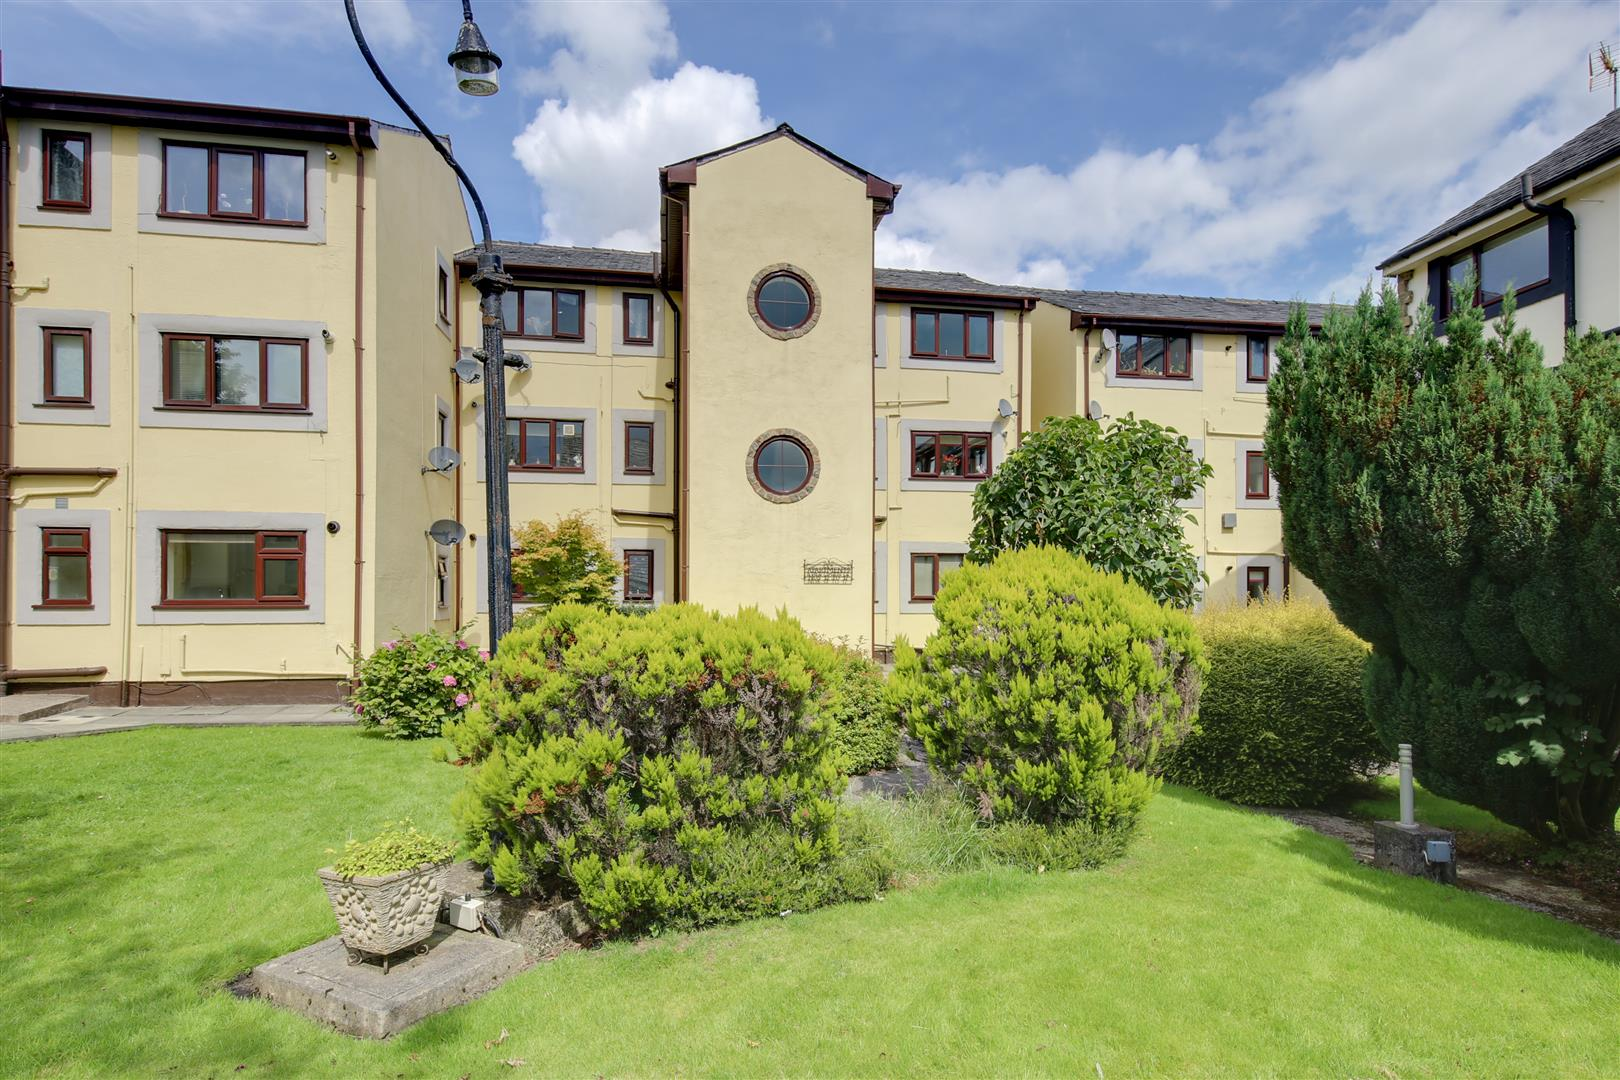 2 Bedrooms Flat for sale in Sizehouse Village, Haslingden, Rossendale